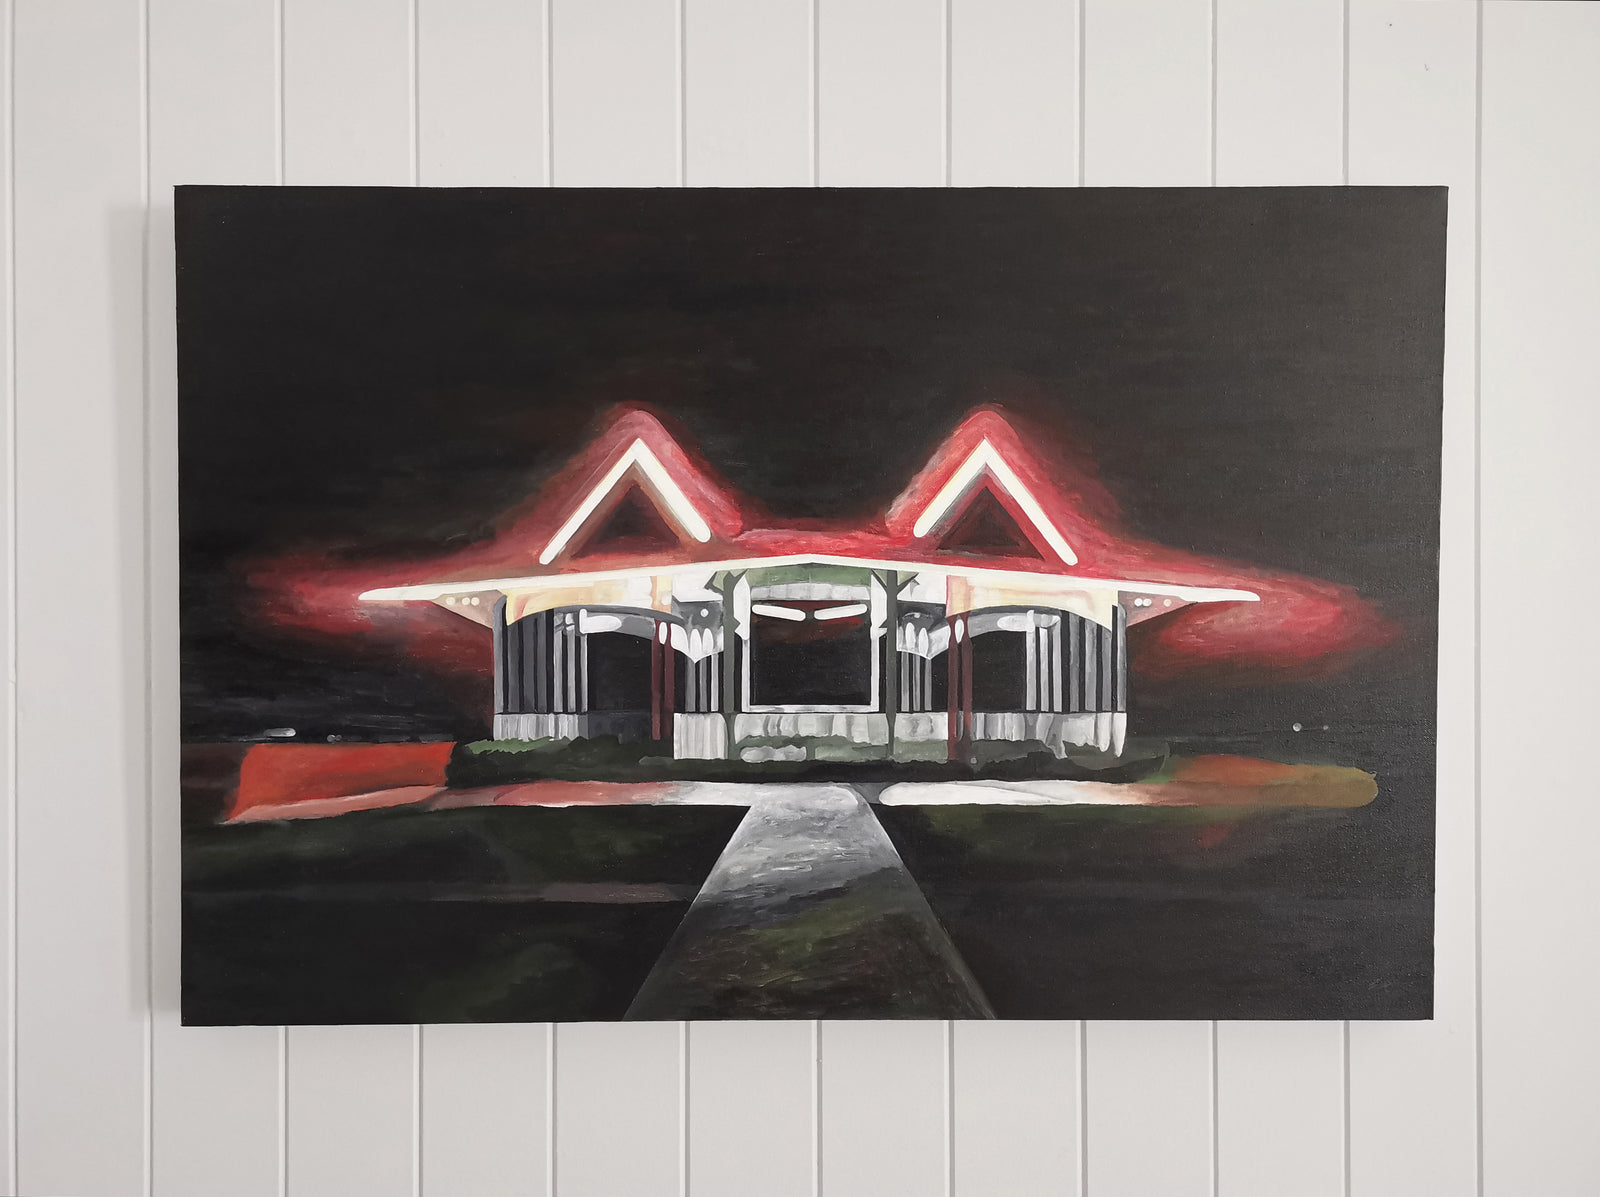 Buy unique artwork from Samir Hamaiel - affordable original artworks from emergingartists. Framed and unframed paintings, prints and art objects.